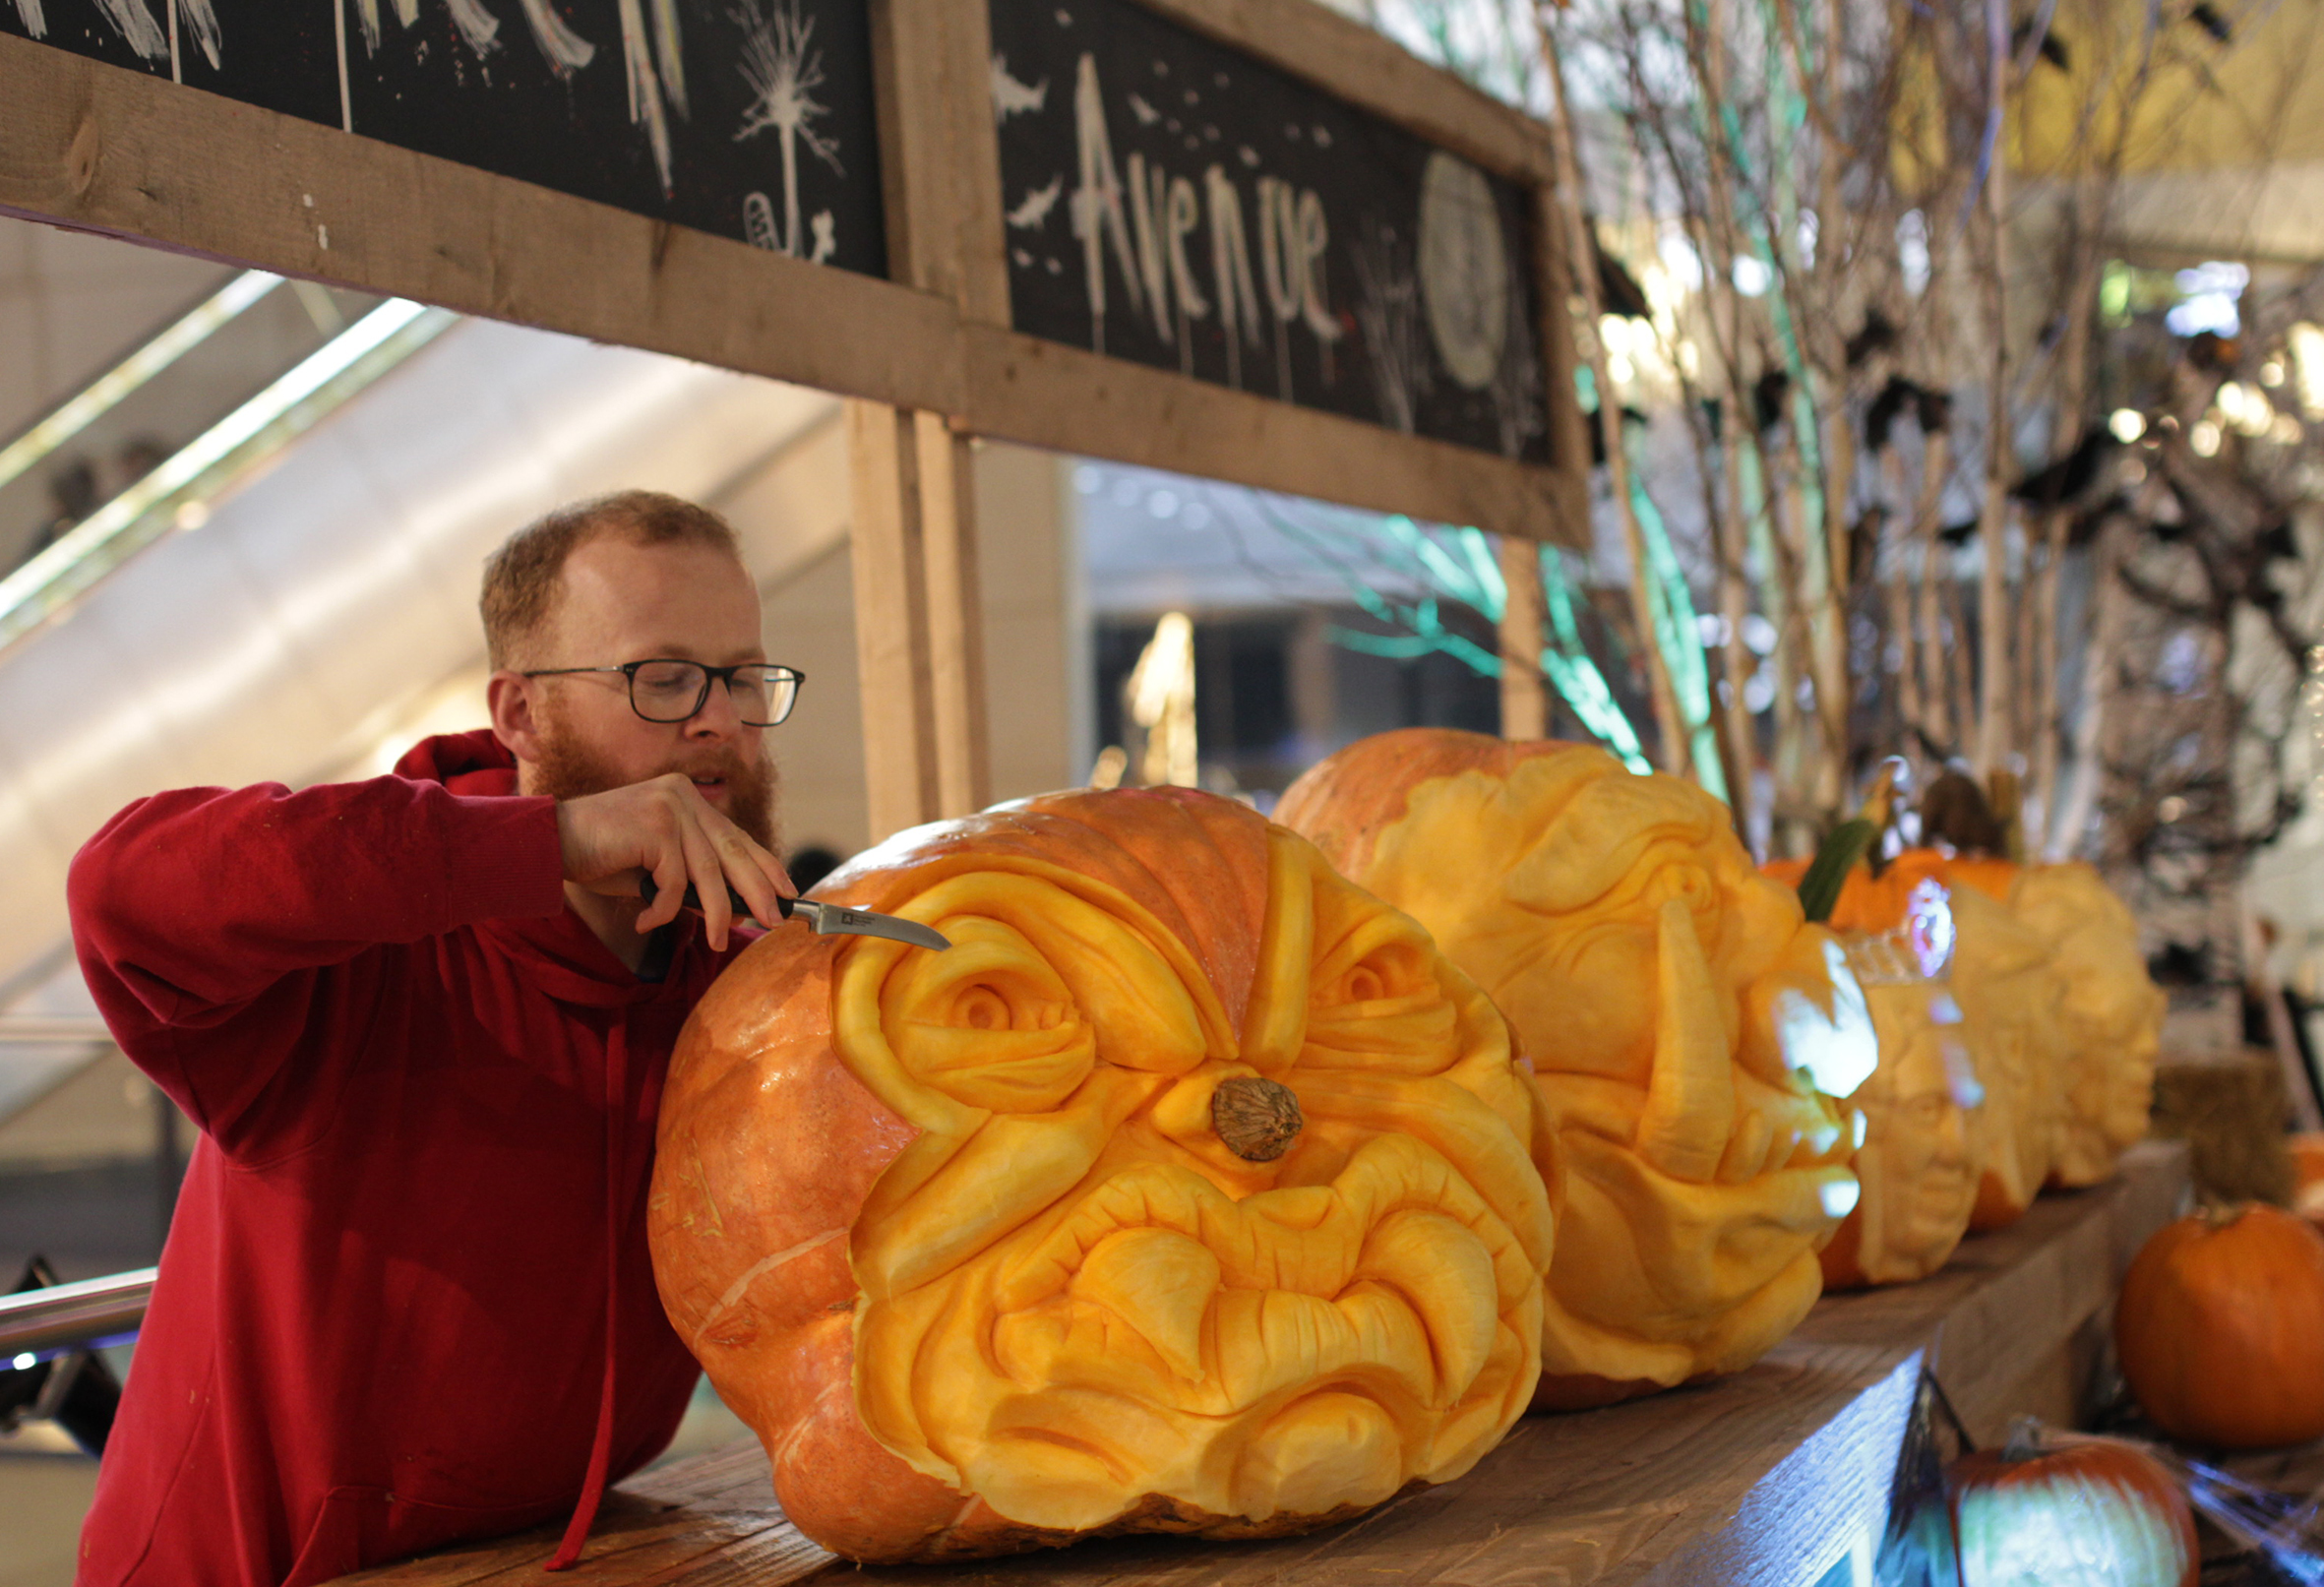 Pumpkin carving fun planned for Bradford city centre to mark Halloween